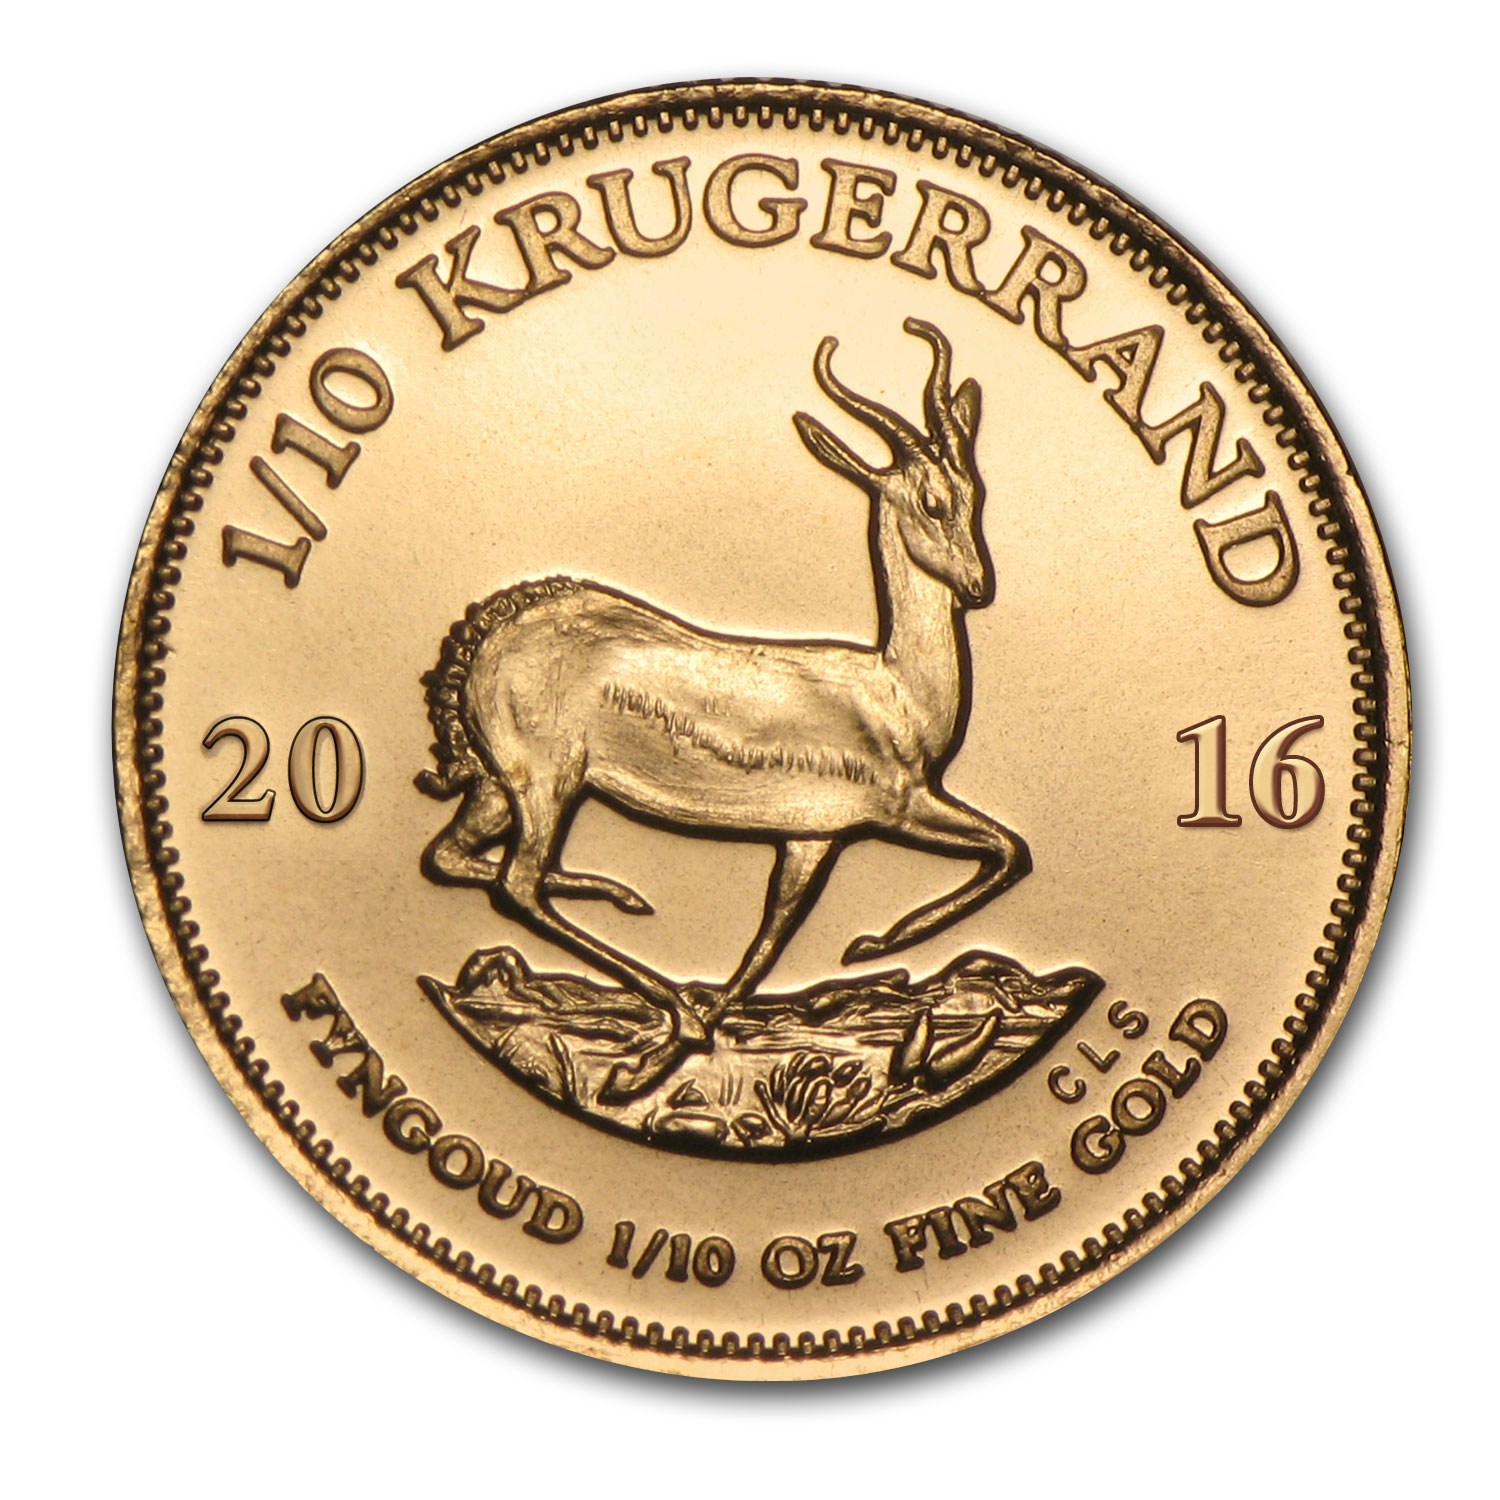 2016 South Africa 1/10 oz Gold Krugerrand